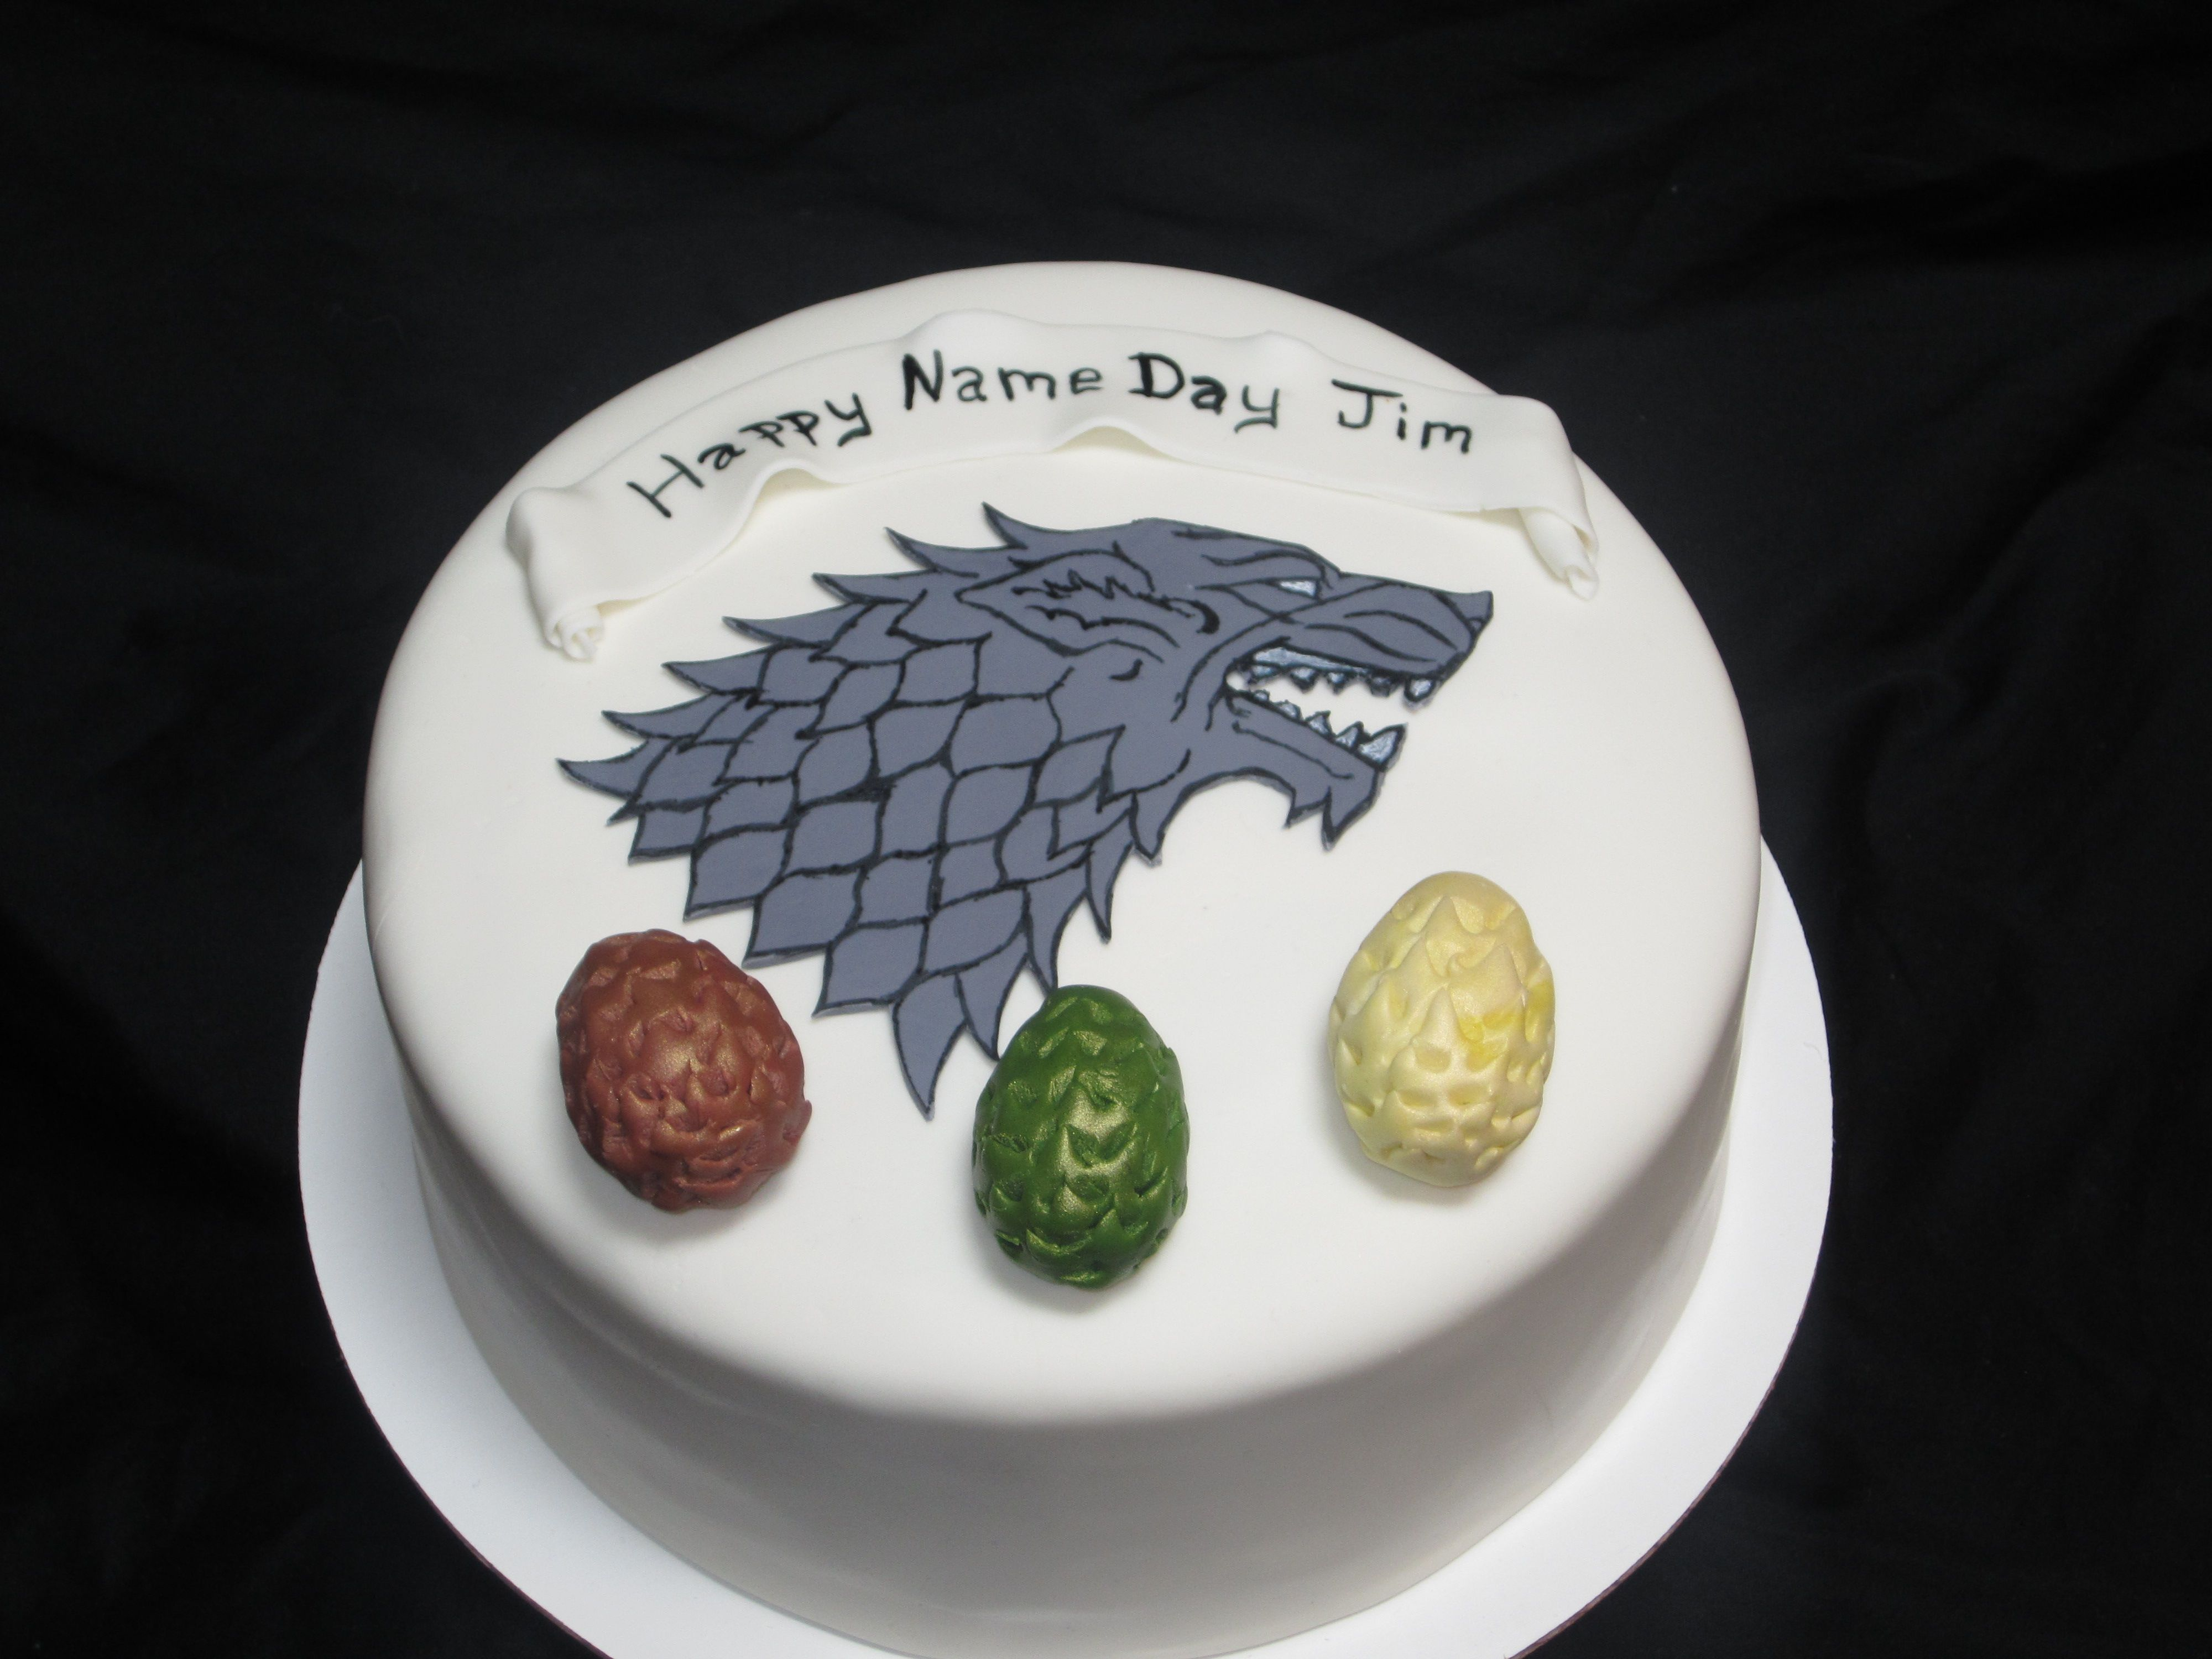 Game Of Thrones Inspired Cake With The Dire Wolf And Dragon Eggs Game Of Thrones Cake Sweet Cakes Crazy Cakes